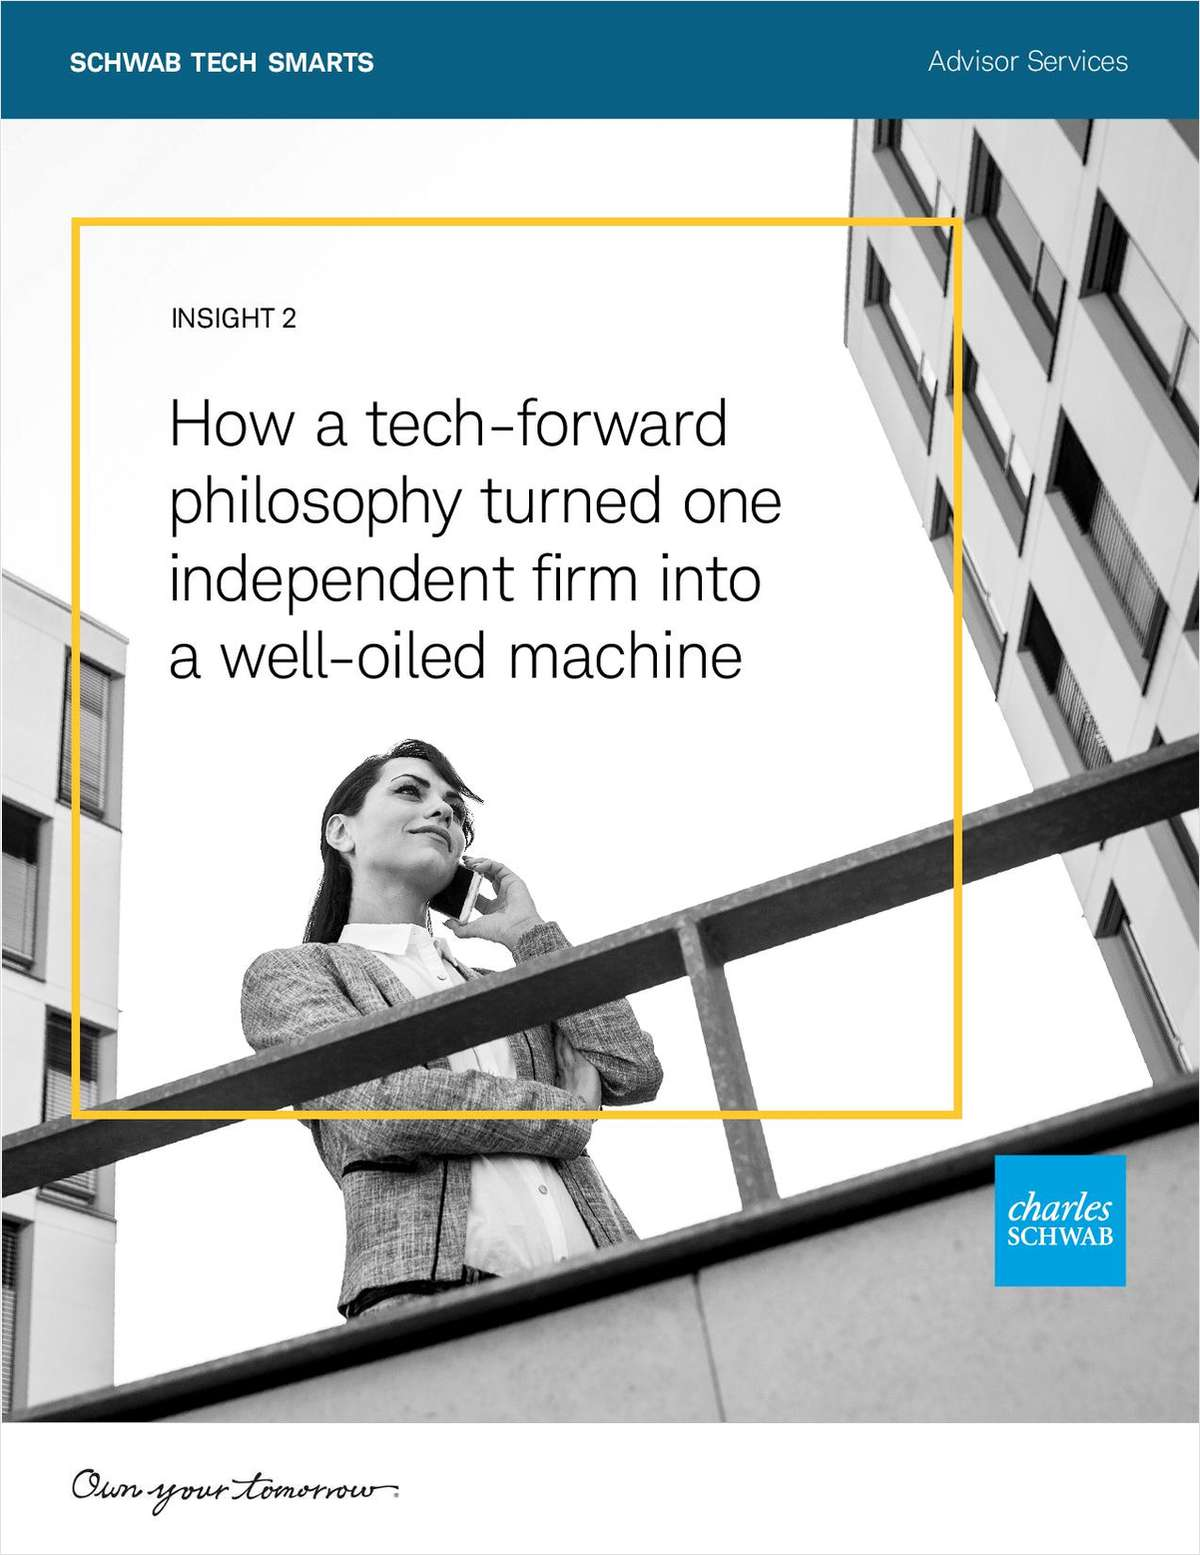 Building your tech stack: How the RIA model gives you freedom to do it your way